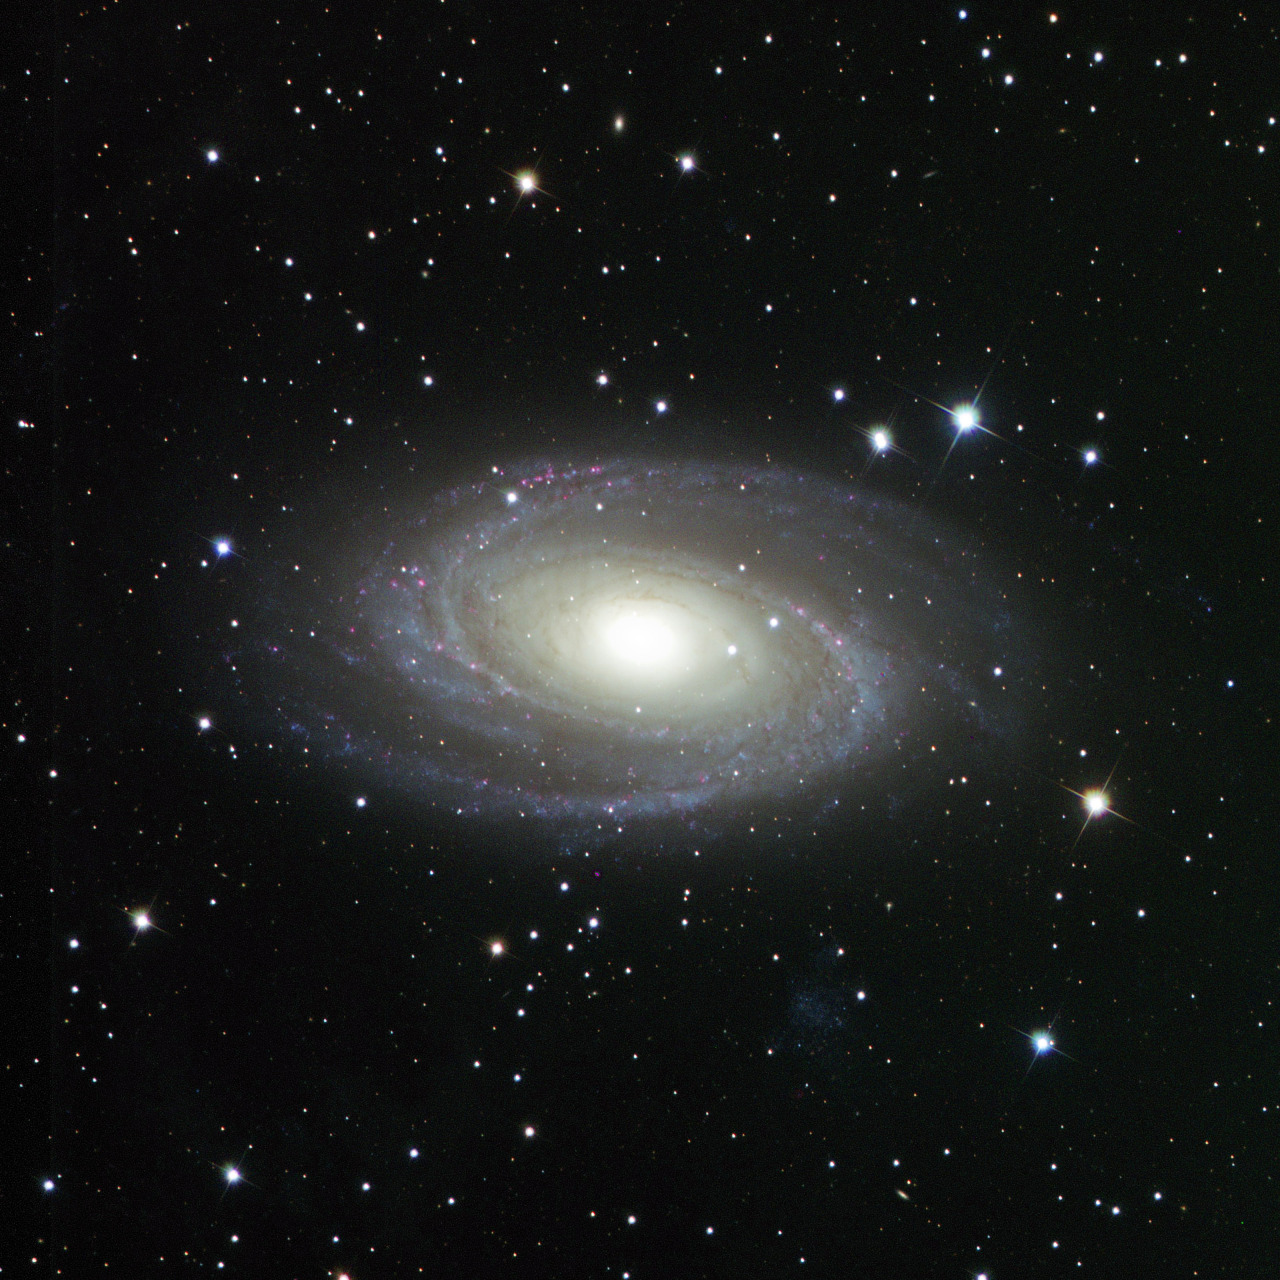 Here's [Mike Hankey's] first galaxy photo of the new year, Messier 81, aka Bode's Galaxy. For reference purposes, here's a Hubble photo of the same object.